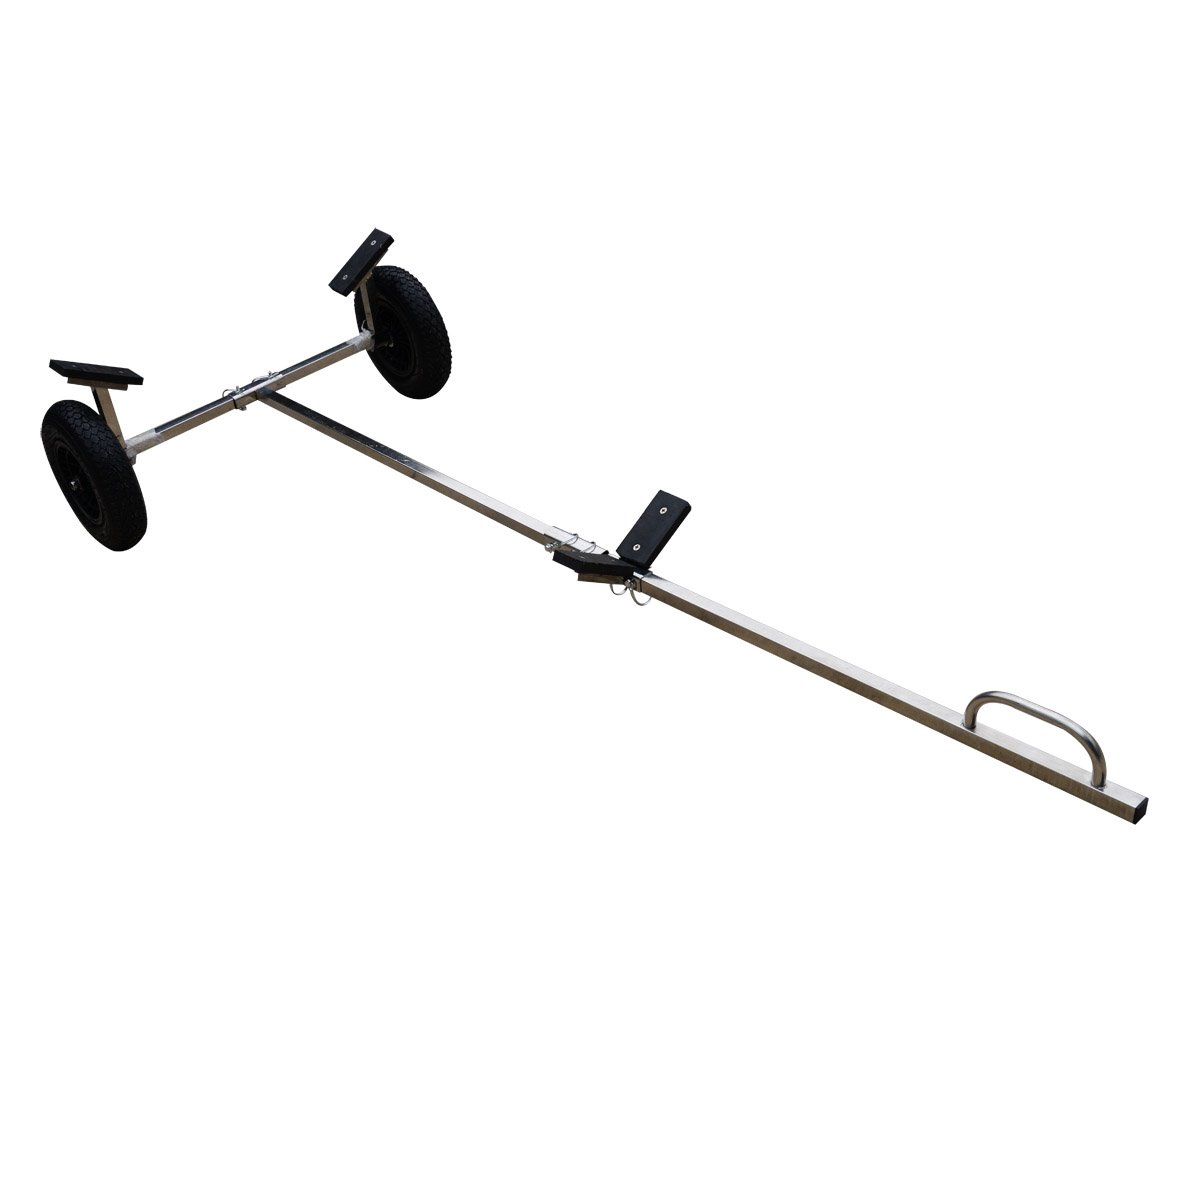 Stainless Steel Boat Launching Wheels Hand Dolly for Small Inflatable boat Trailer by BRIS